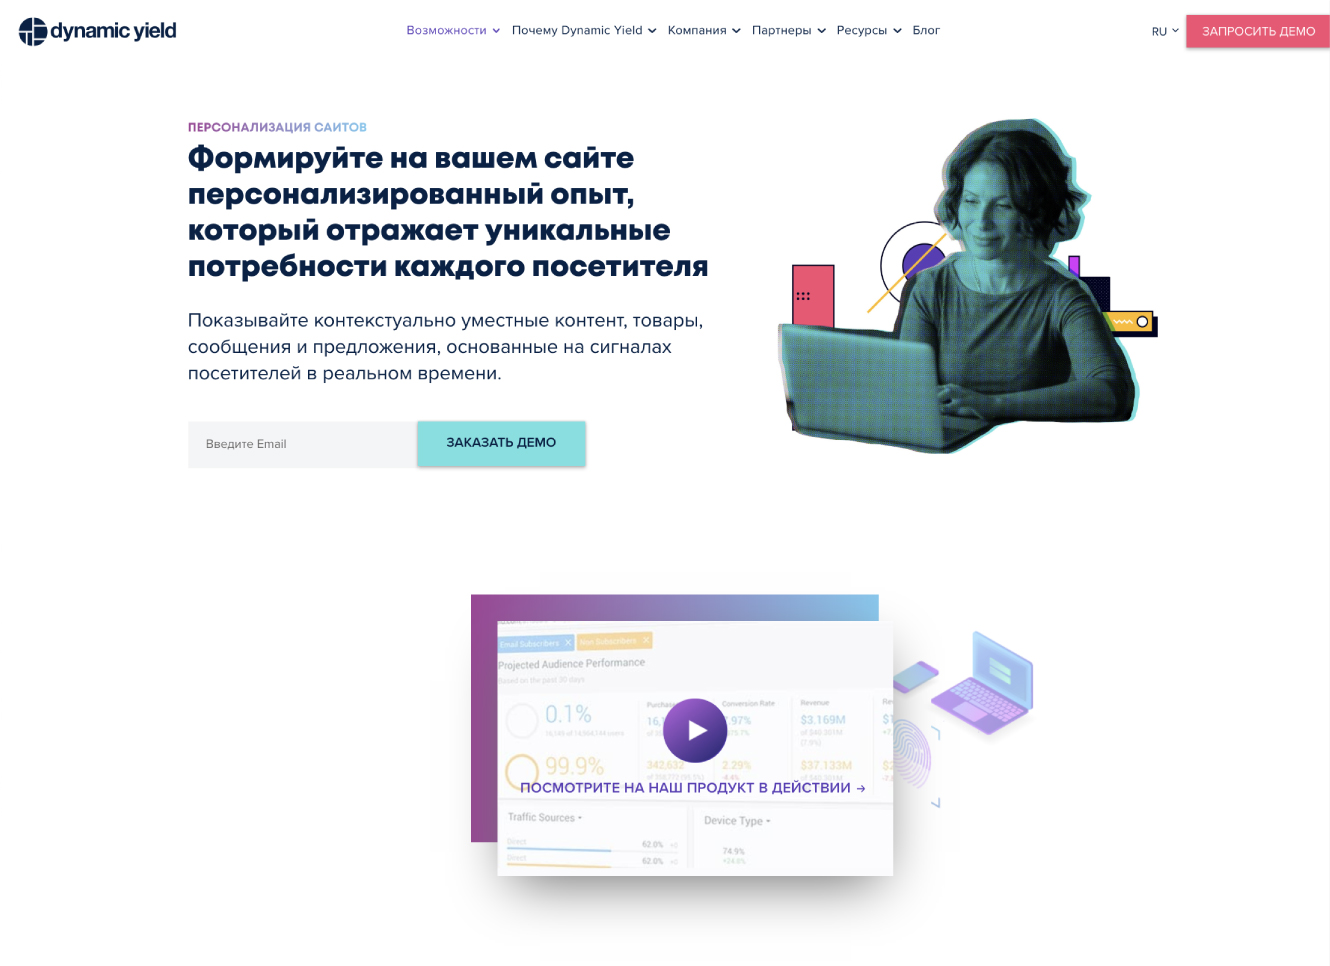 Dynamic Yield Russian Homepage